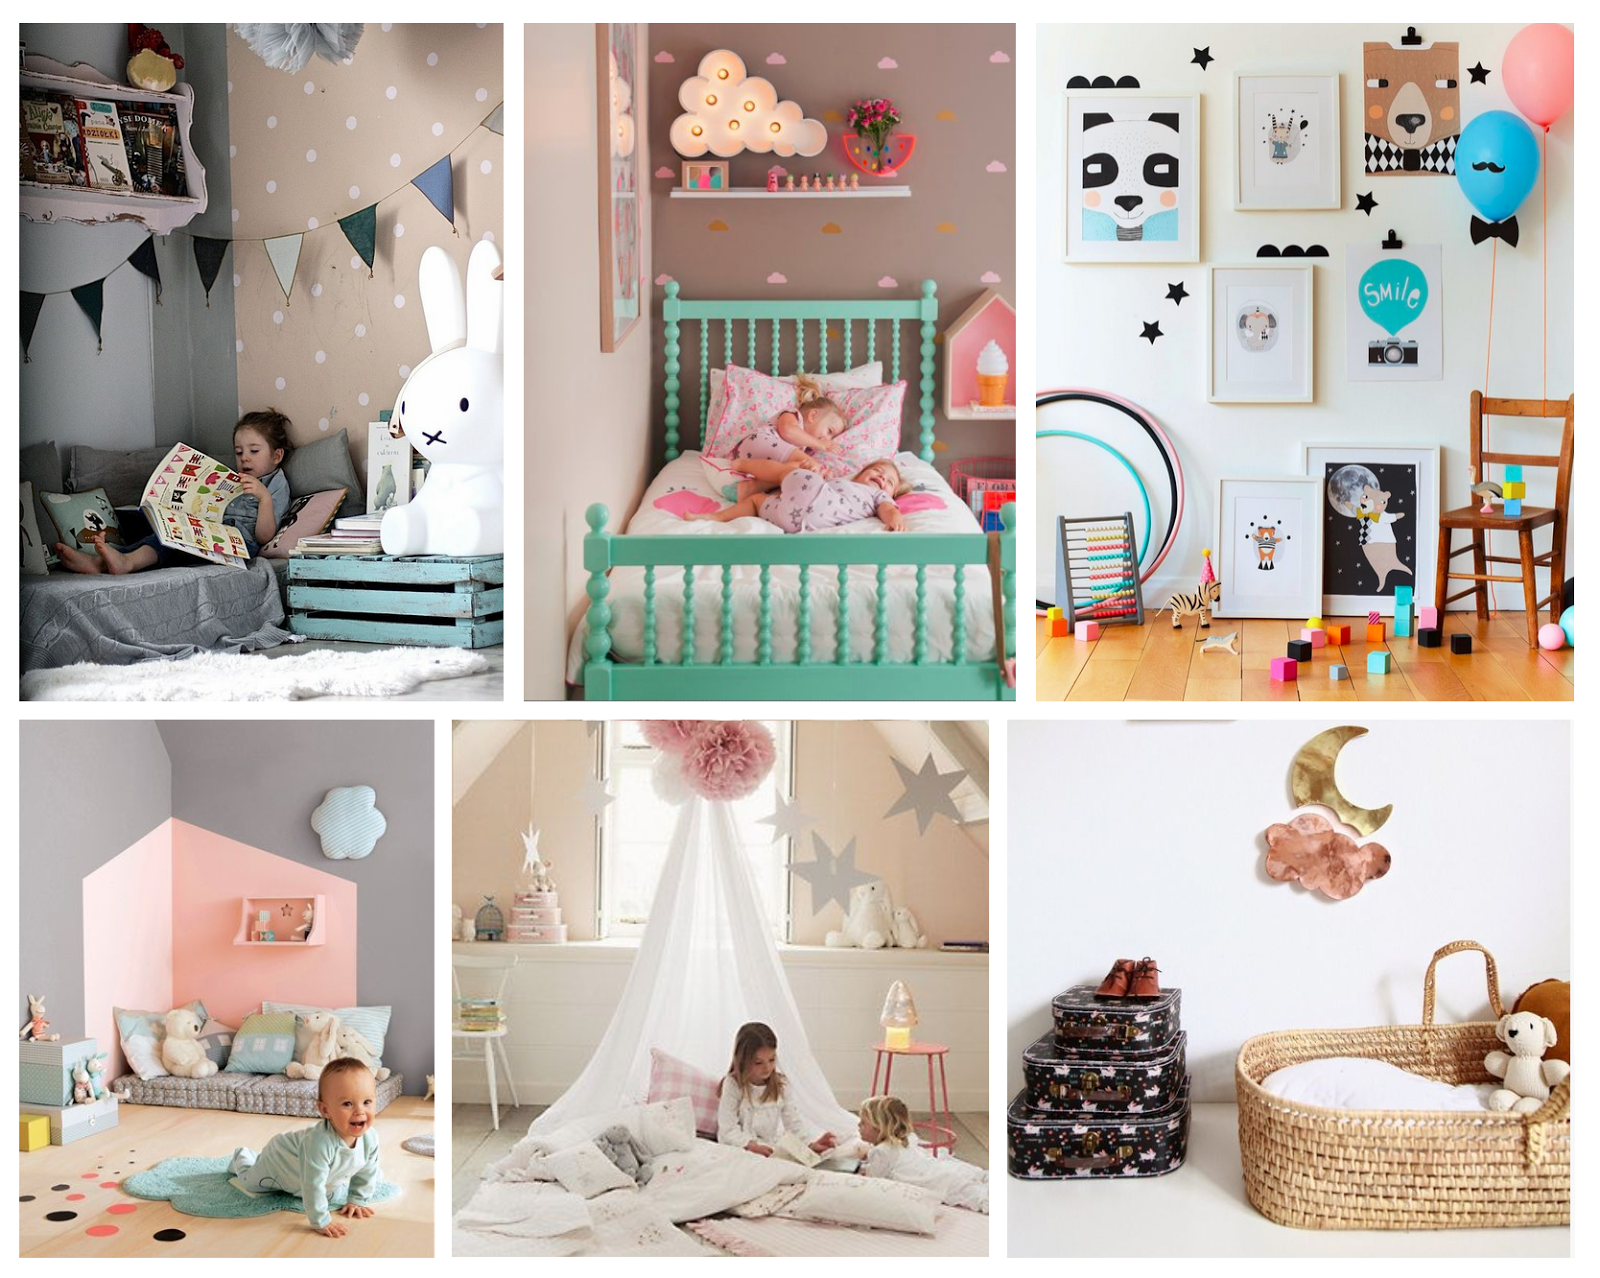 https://www.pinterest.com/companhiadogato/rooms-for-kids/